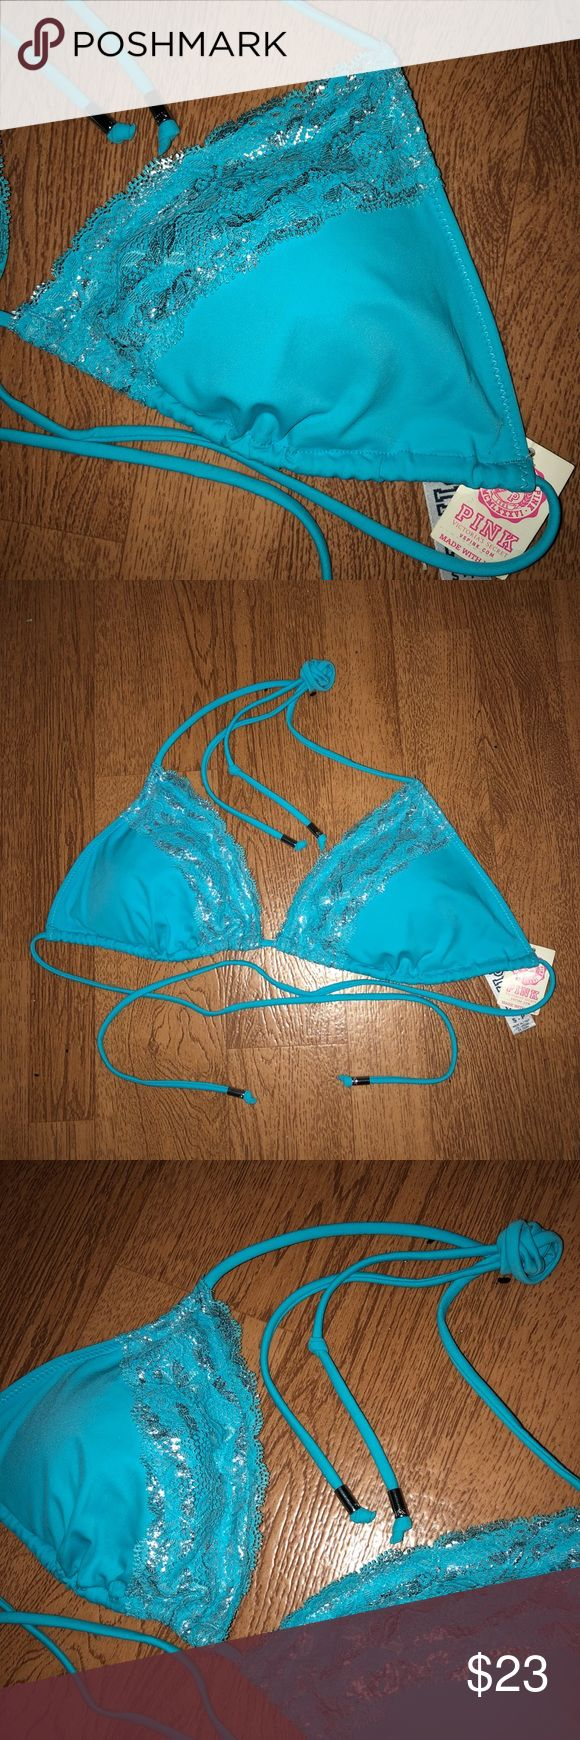 S PINK By Victoria's Secret Padded Triangle Bikini CONDITION: New with tag   BRAND: Victoria's Secret pink   SIZE: small   DETAILS: ice blue with silver detail. Lace bust trim with adjustable tie neck and back. Metal endings on strings. Padded but not push-up.   FLAWS: N/A  #VS #Swim #Top #AthensOH #forsale  #Fashion #Style #TopShopStyles #ClothesFORSALE  @CksClosetOverload  Item No. 9 PINK Victoria's Secret Swim Bikinis